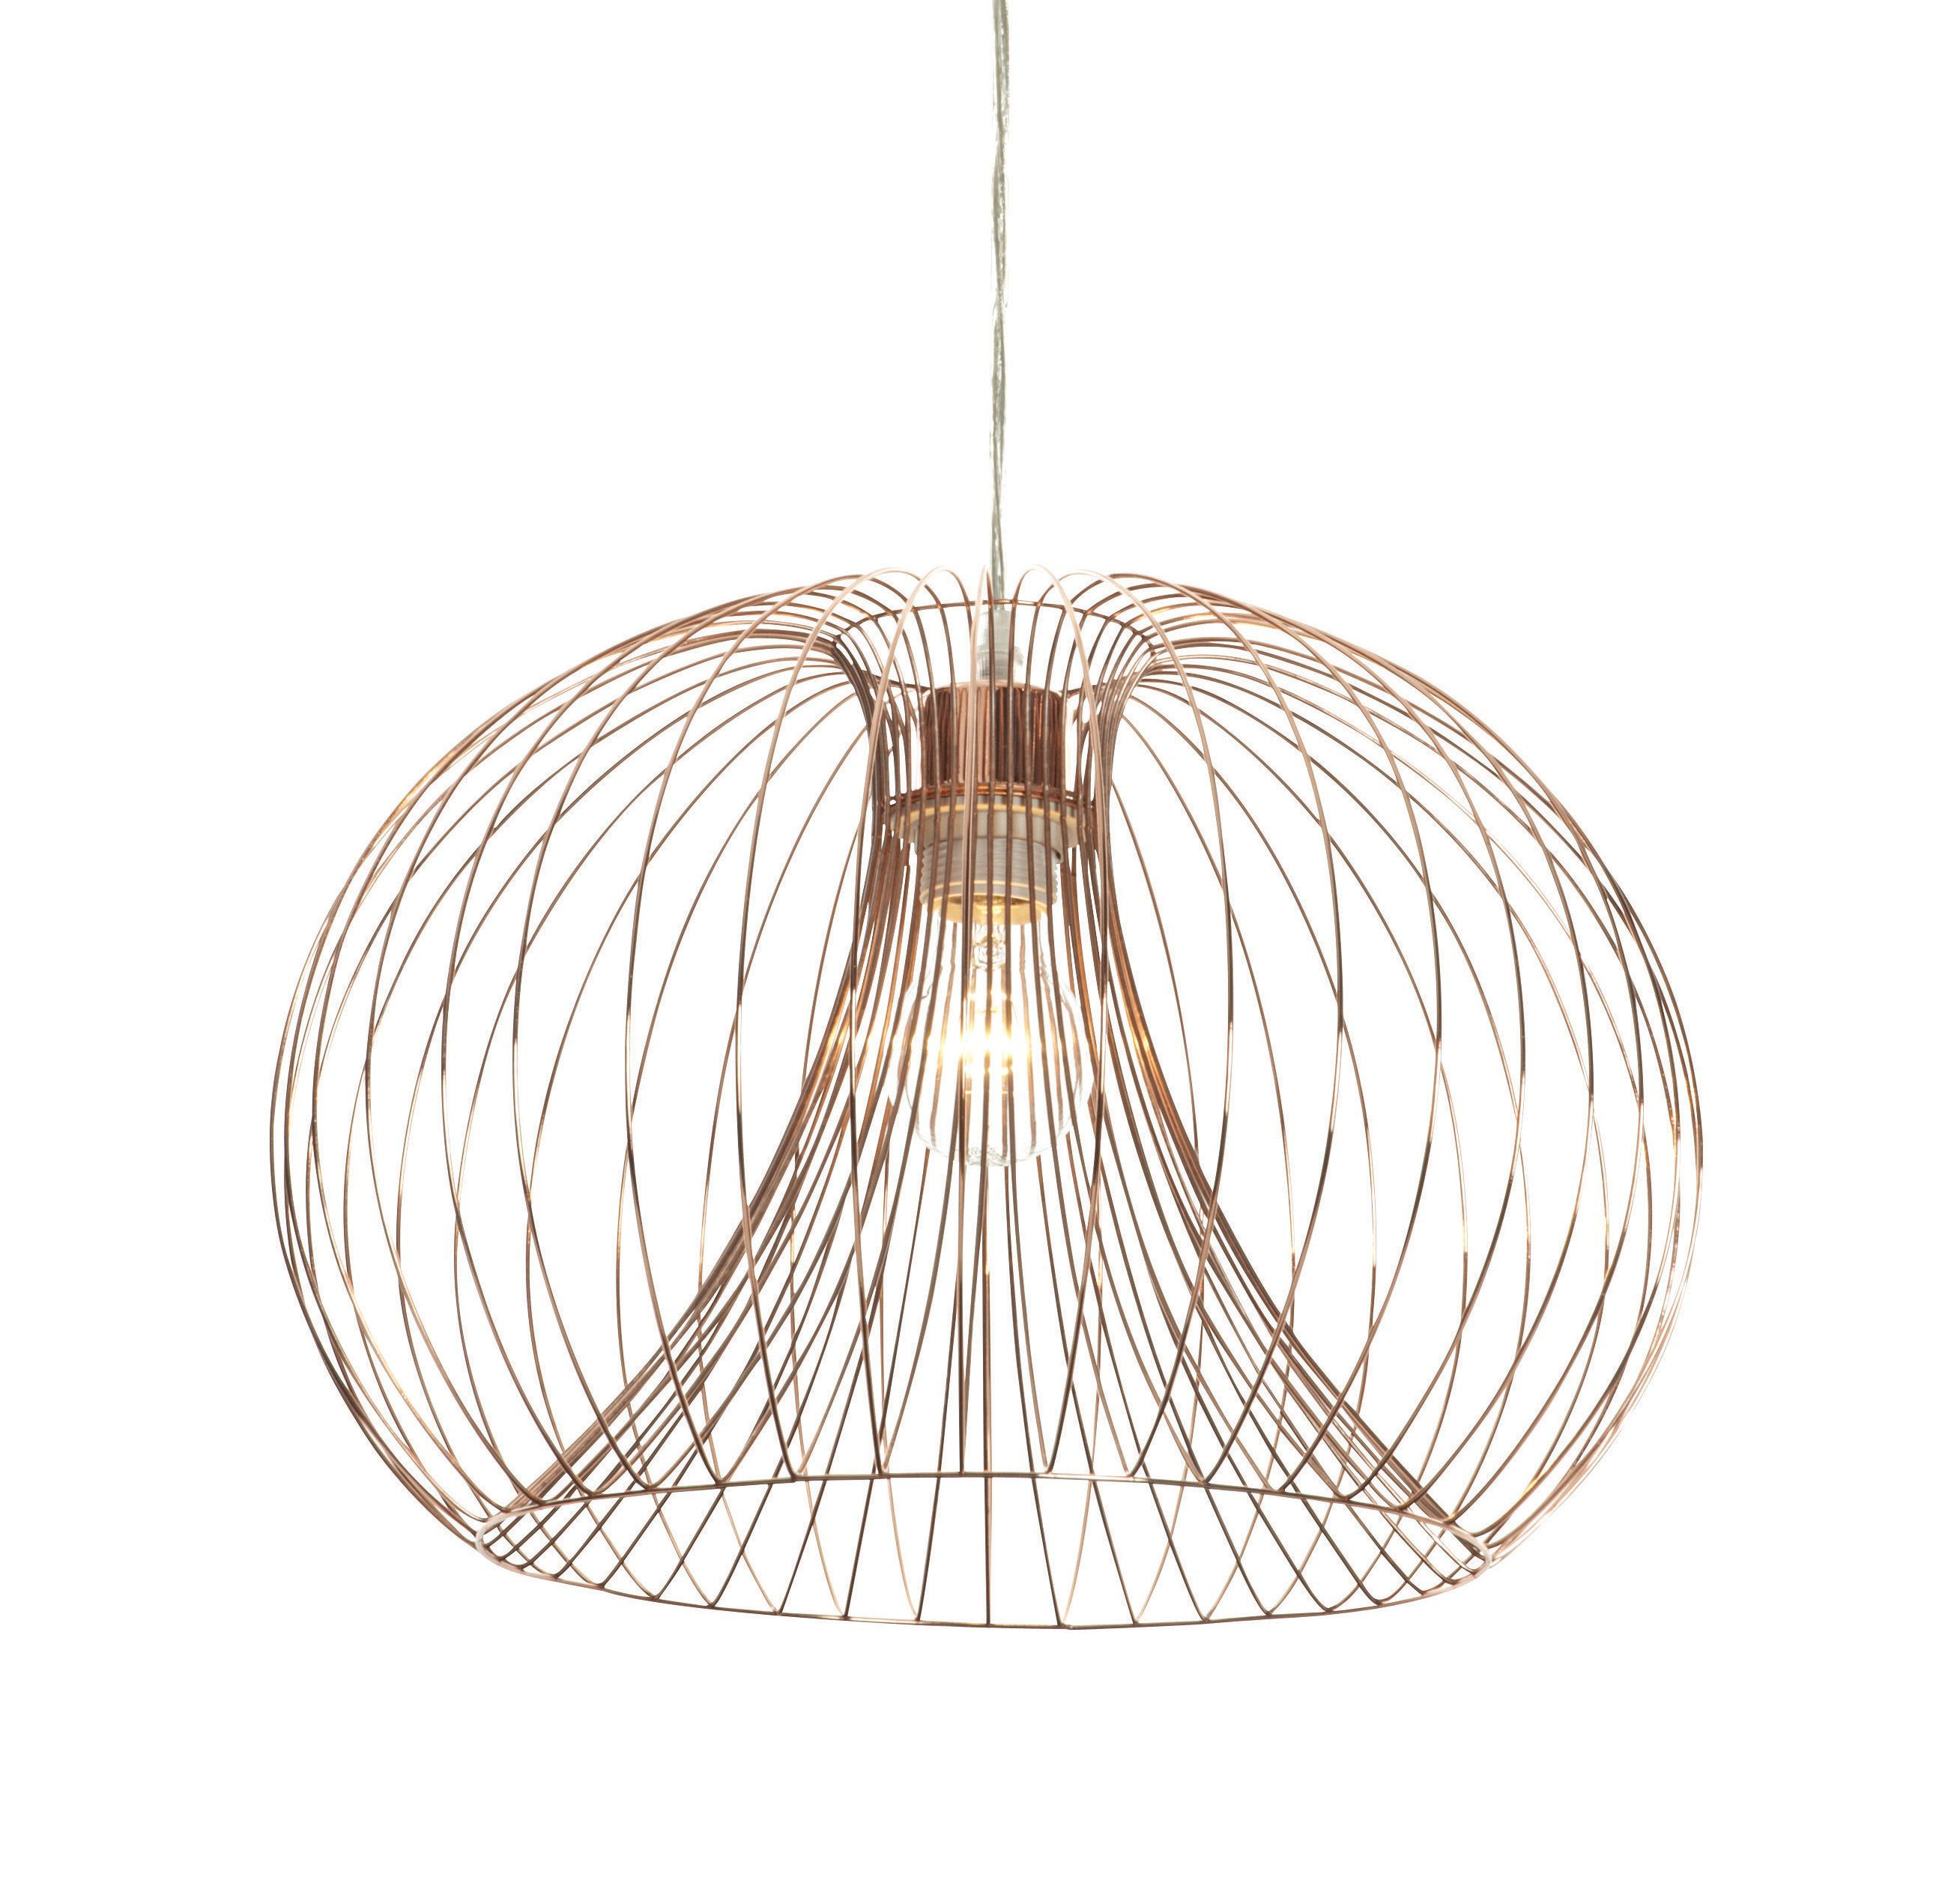 small resolution of creative rustic lighting ideas in 2019 for the home bedroom jonas copper wire pendant ceiling light